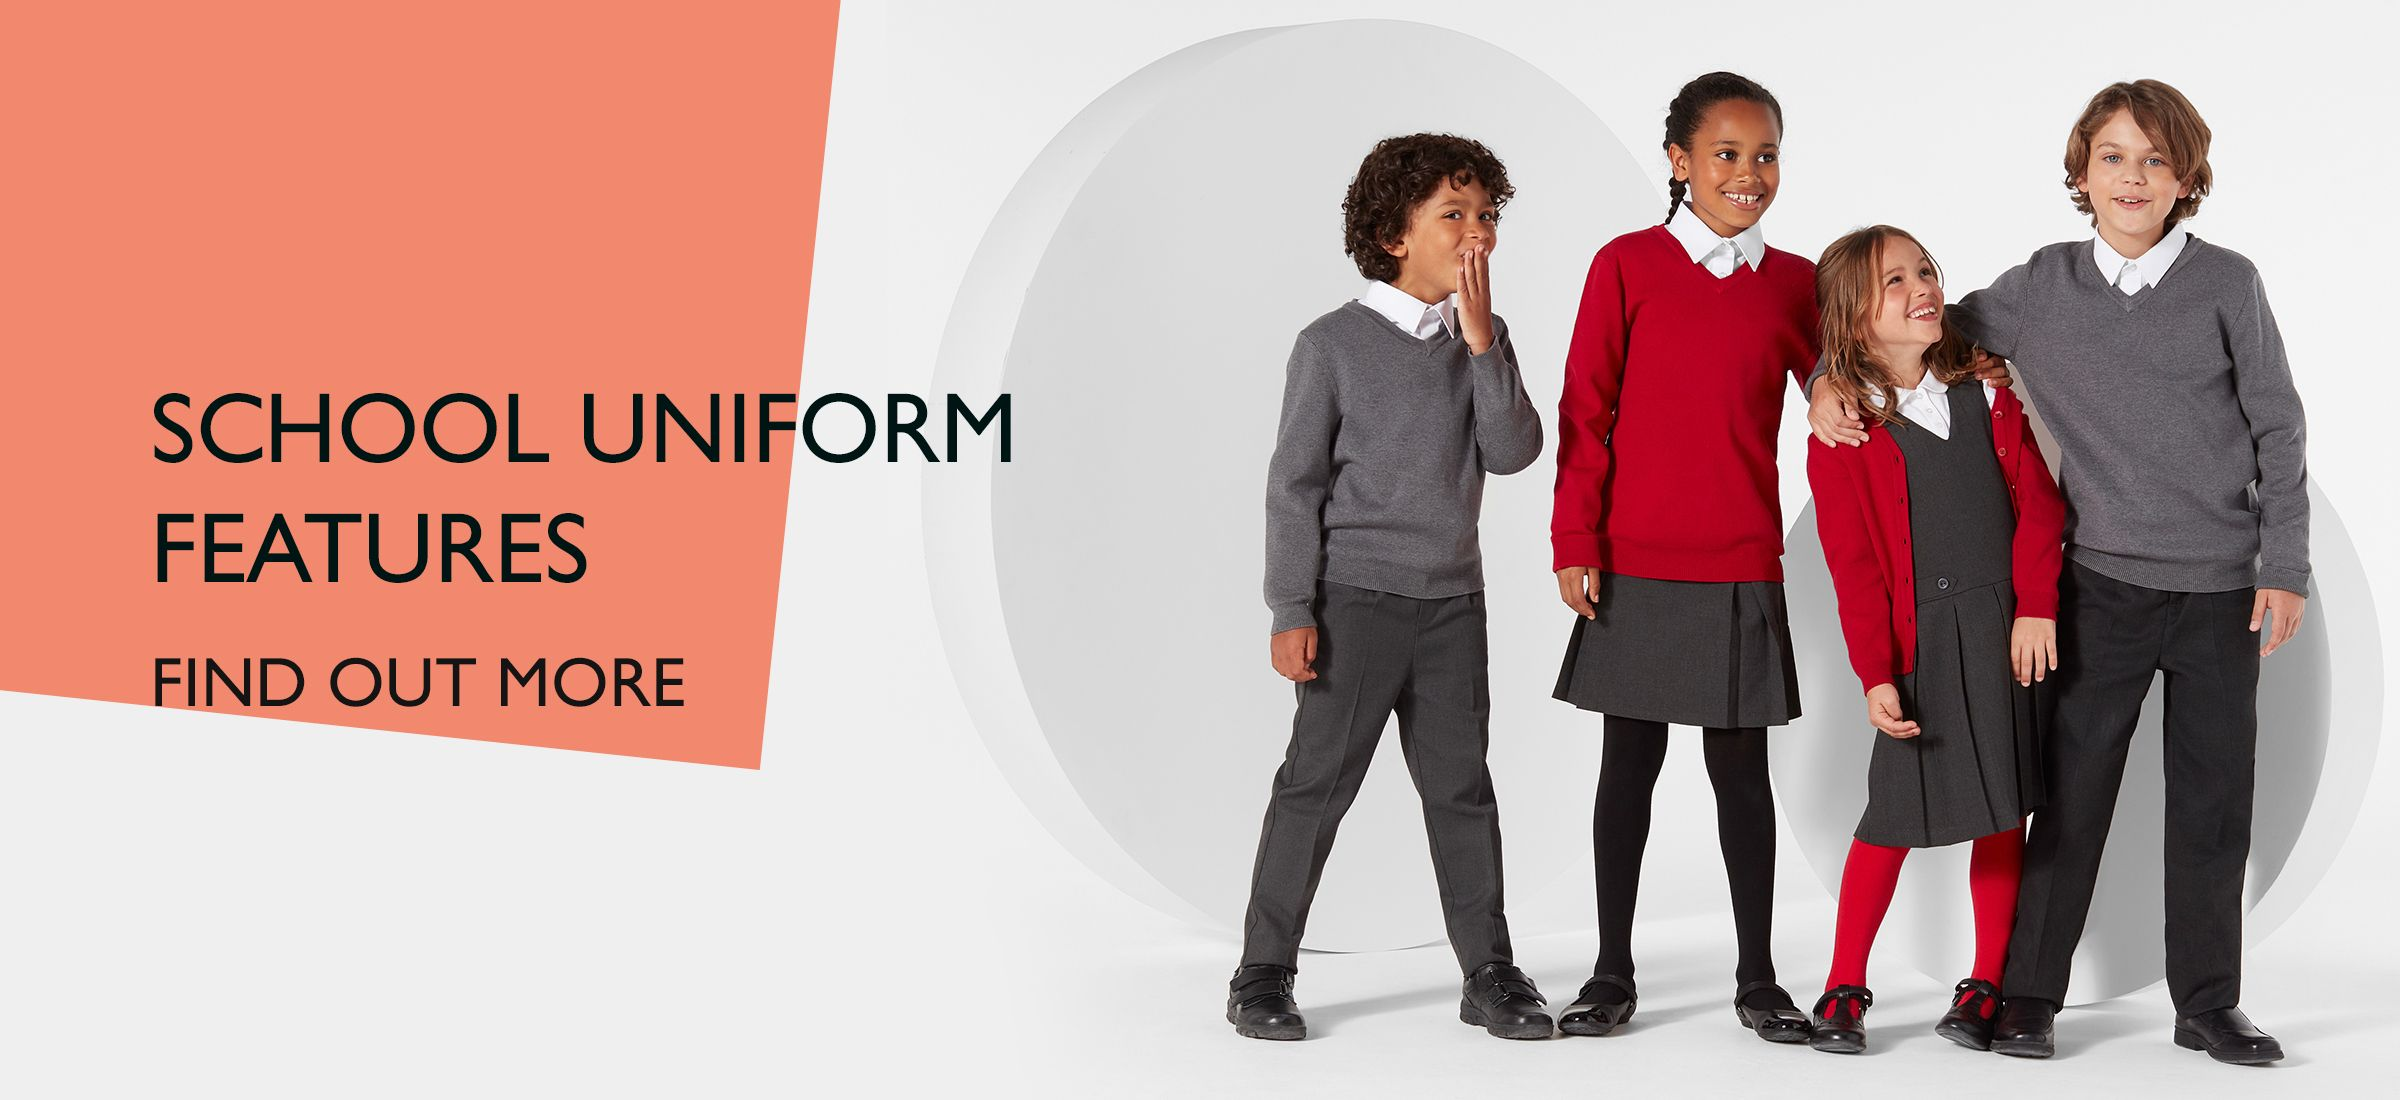 SCHOOL UNIFORM FEATURES